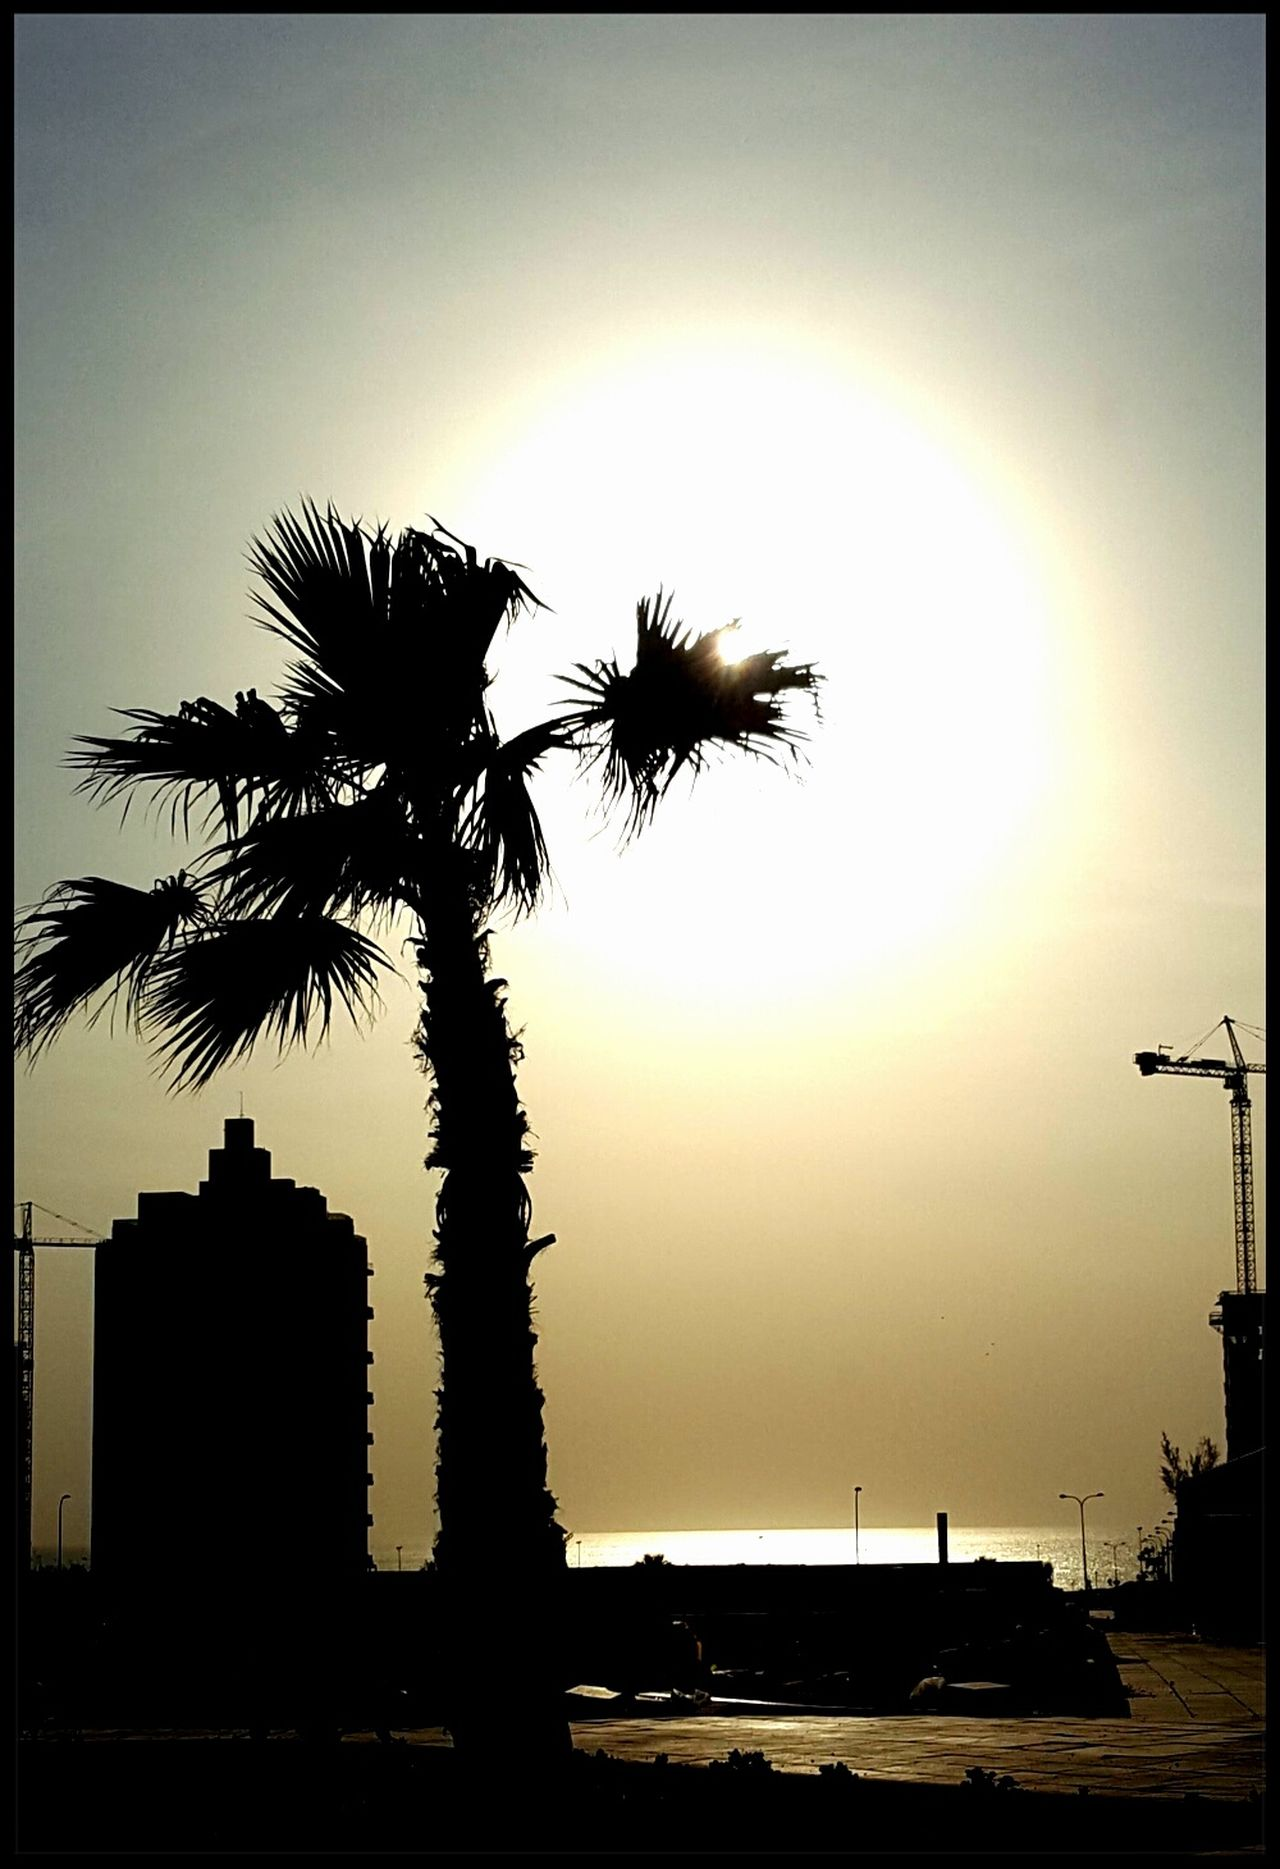 My Year My View Sunset Silhouette Branch Sea Tree Palm Tree Nature No People Outdoors Water Scenics Sky Beauty In Nature Day